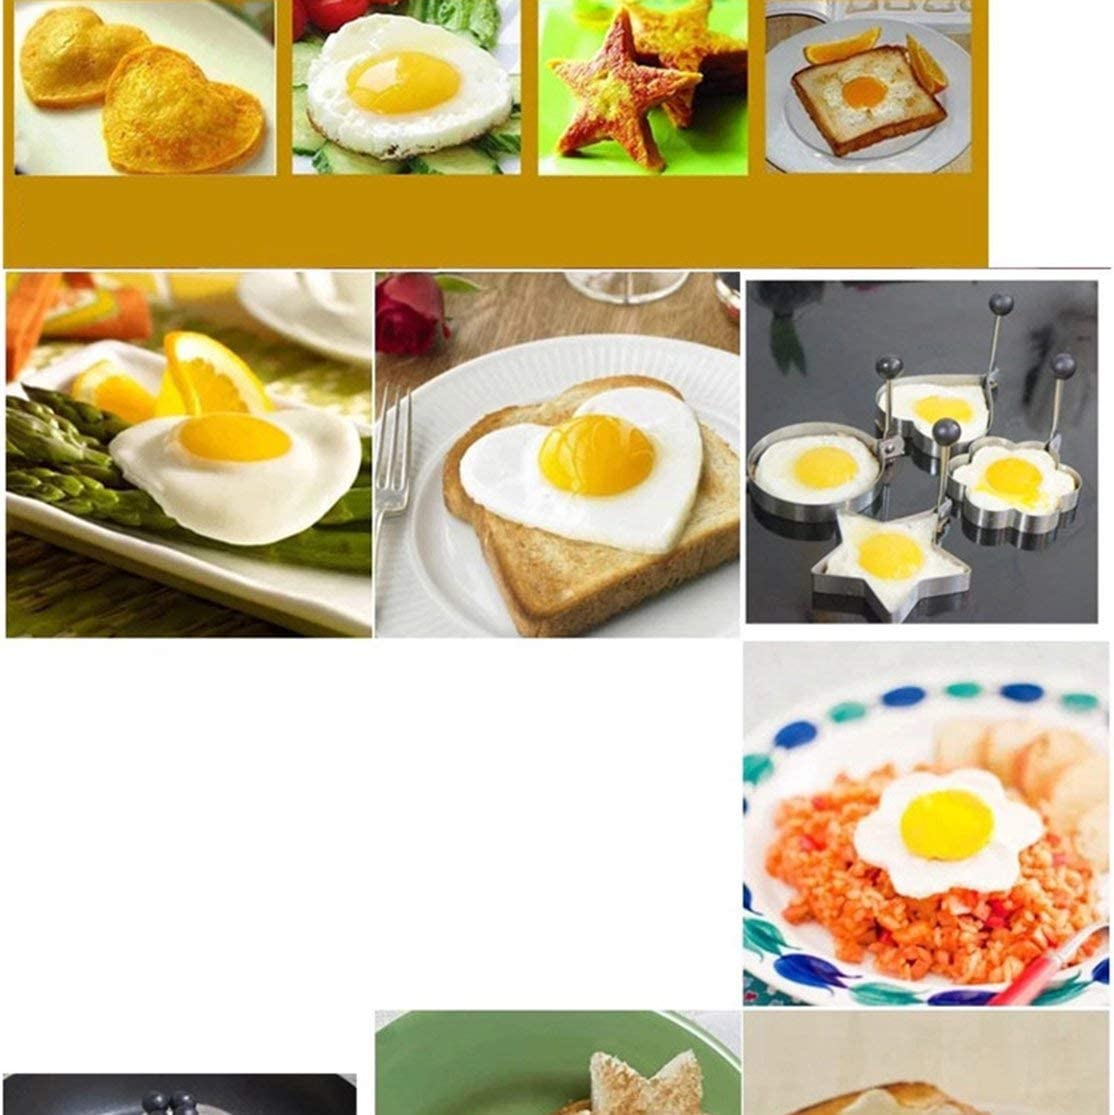 Candyboom Stainless Steel Form For Frying Eggs Tools Breakfast Omelette Mold Device Pancake Ring Egg Shaped Kitchen Tool Round